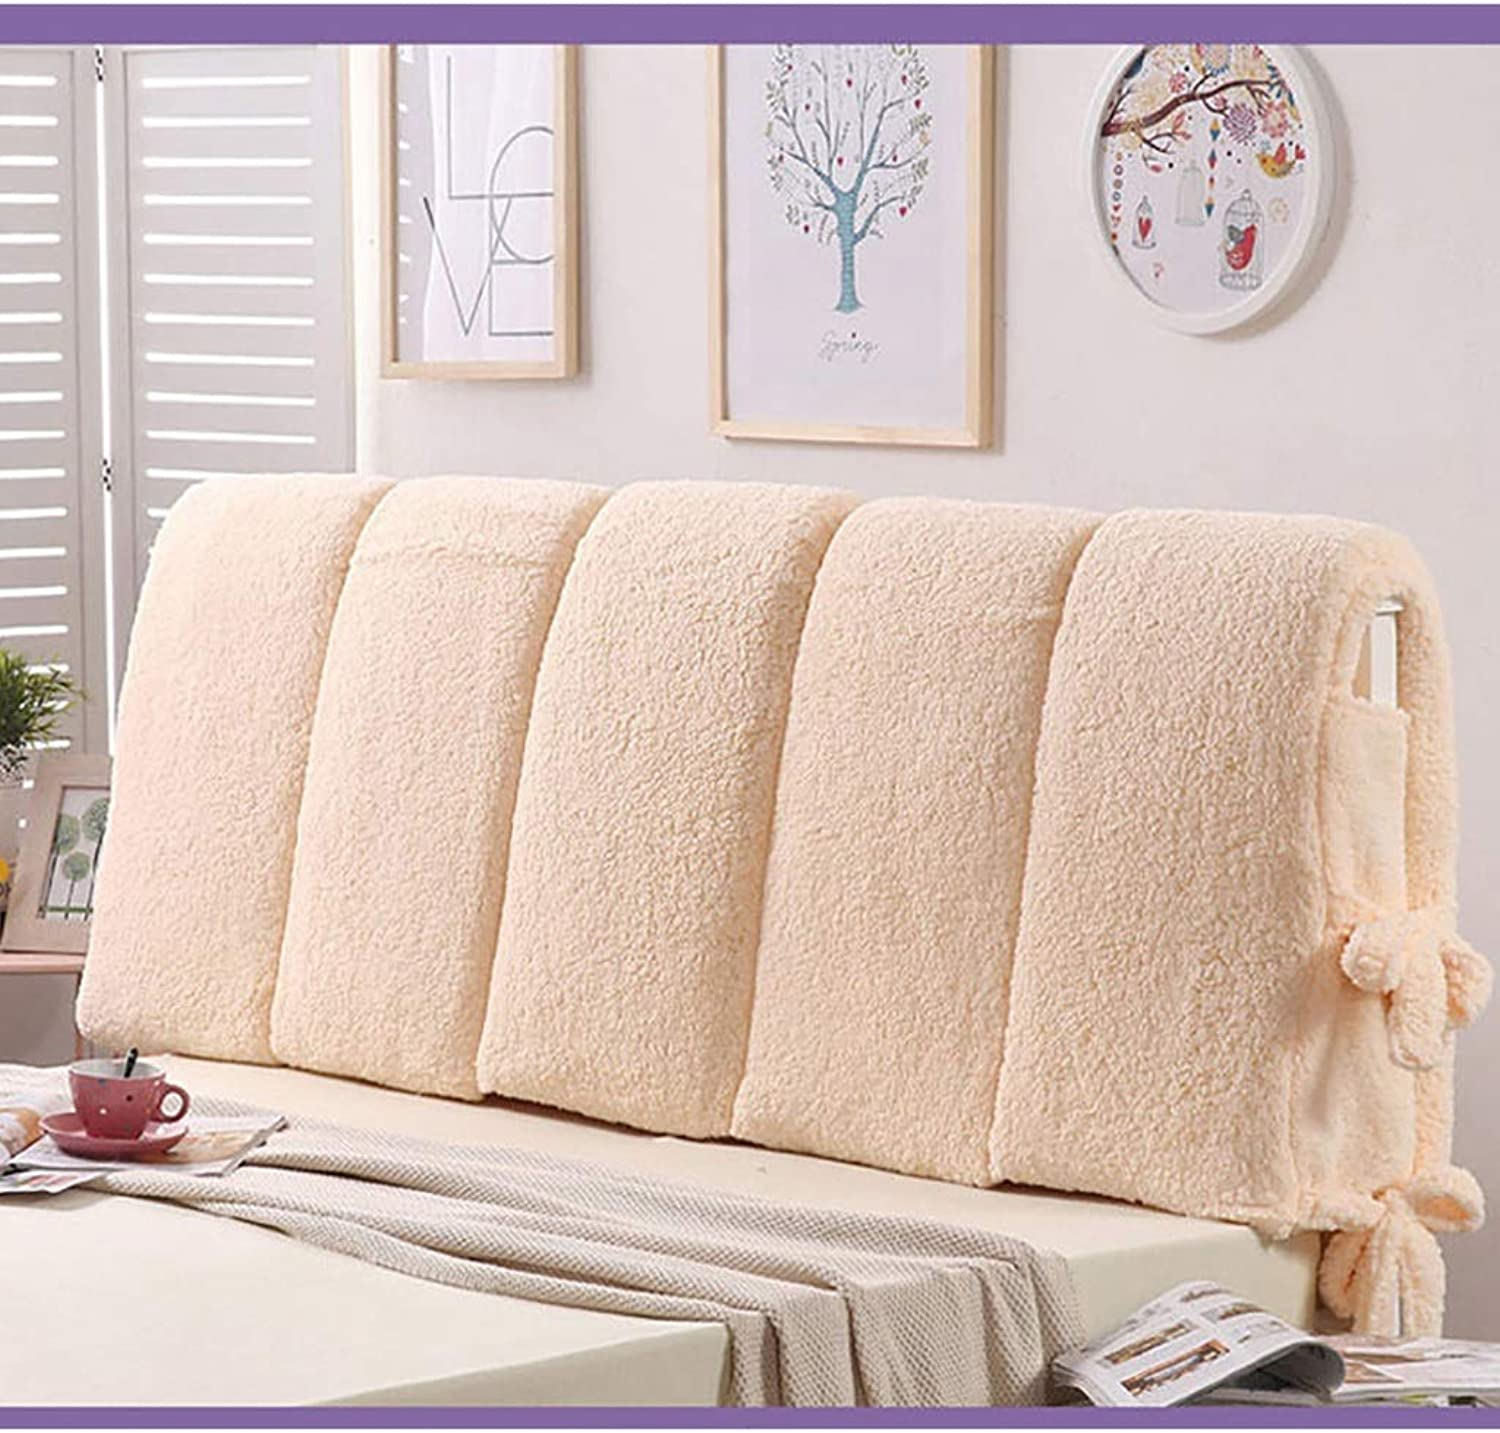 Large Soft Upholstered Headboard Cushion Wall Pillow Lumbar Pad Bed Backrest Breathable Removable Washable (color   B, Size   150cm)